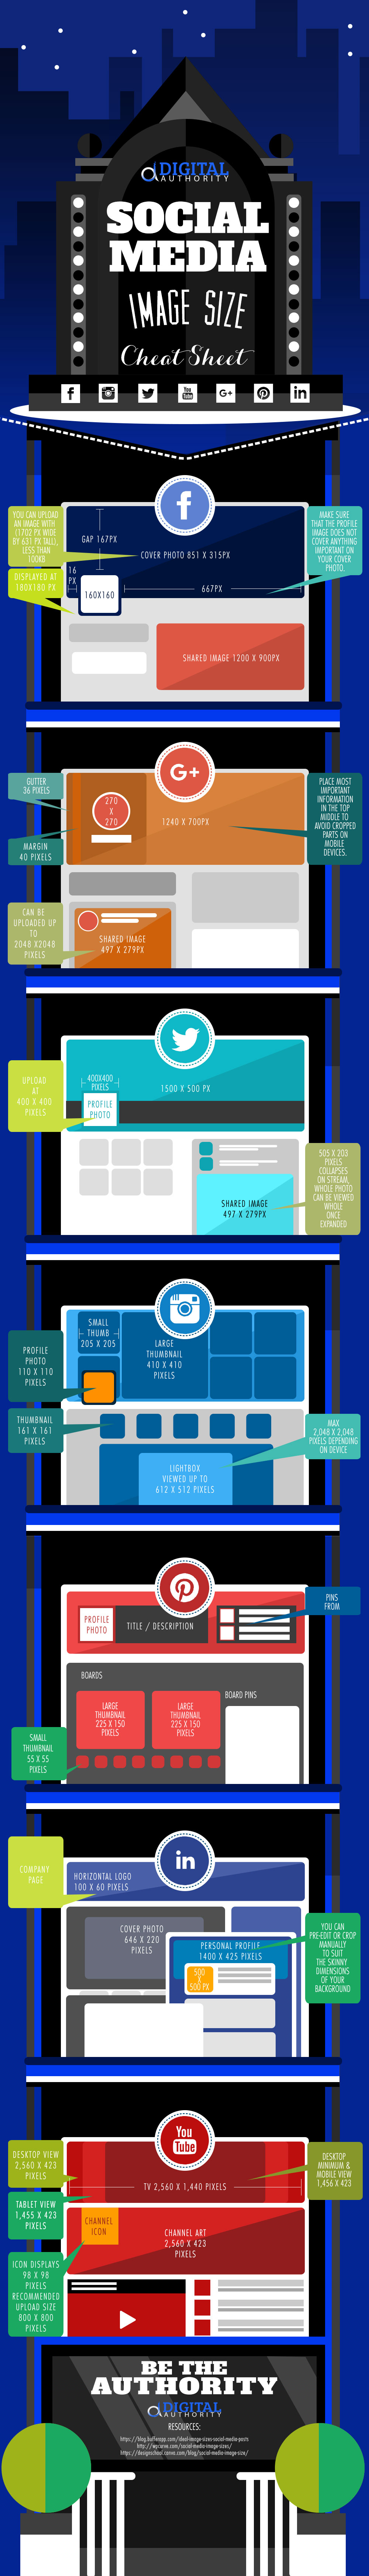 social-media-image-sizes-infographic